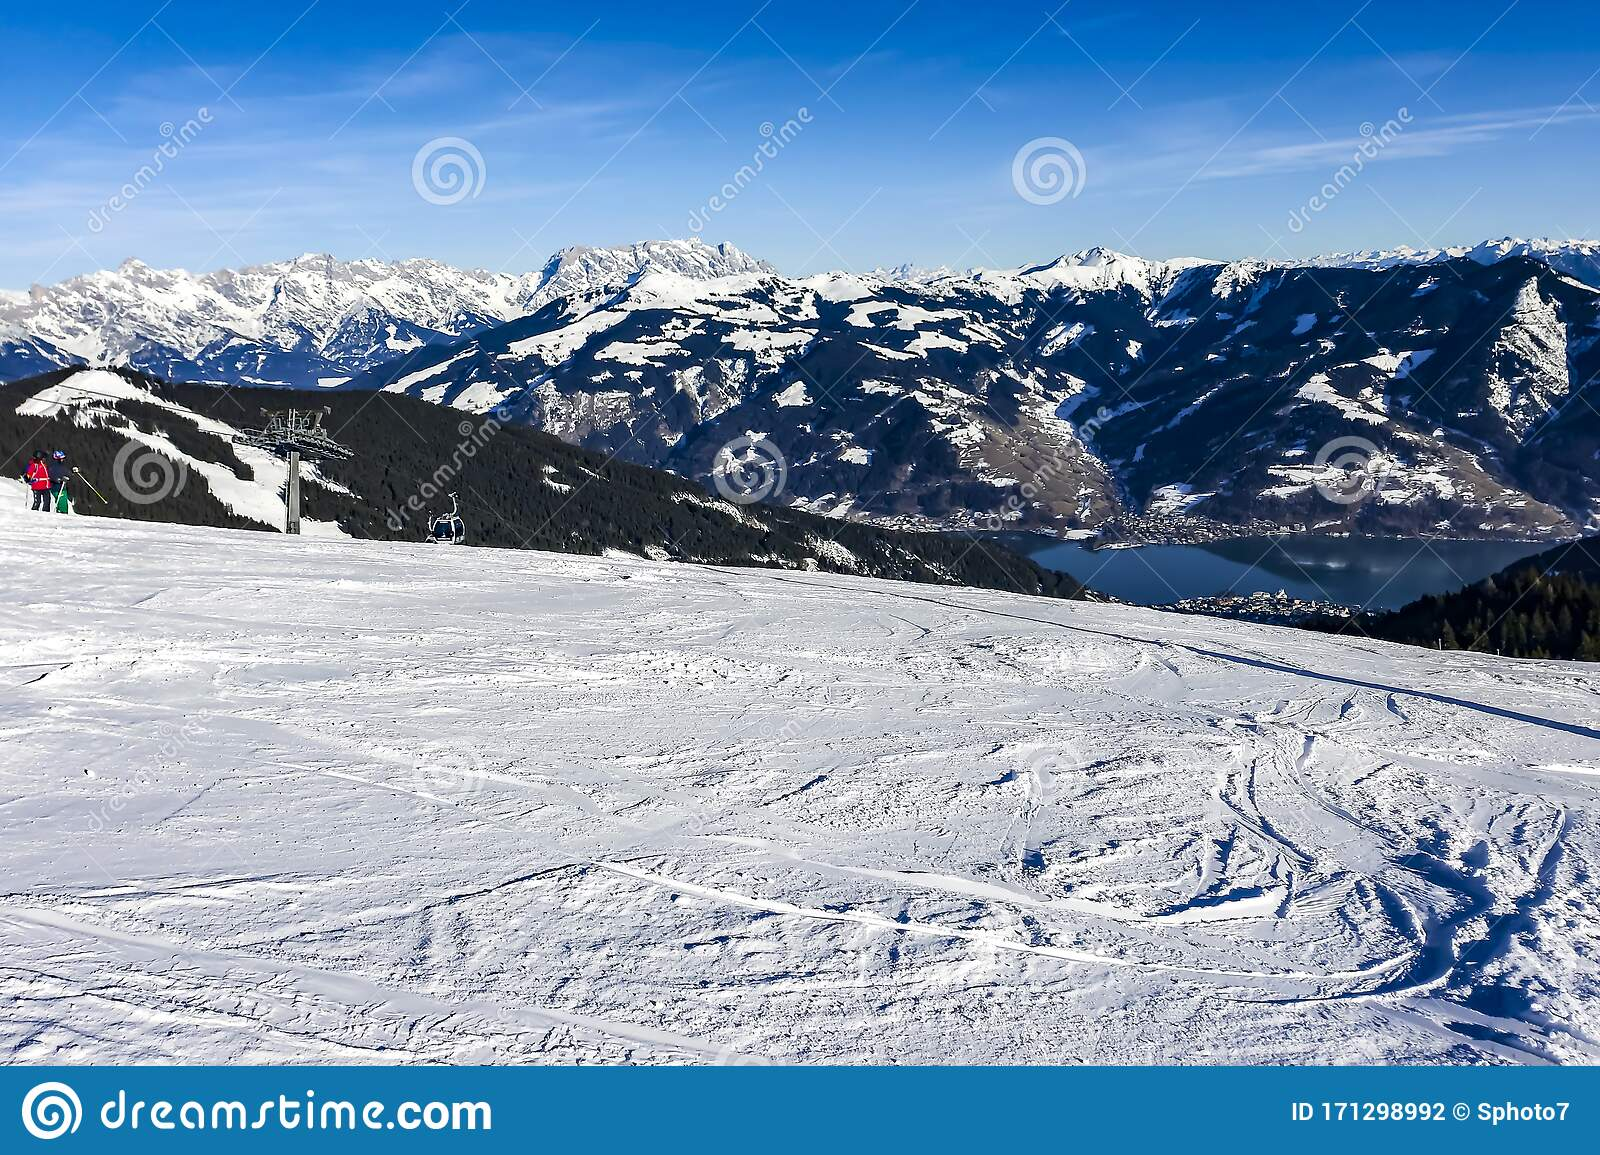 Winter Sunny Day In The Mountains Snowy Winter Mountain Background Stock Photo Image Of Holiday Mountain 171298992